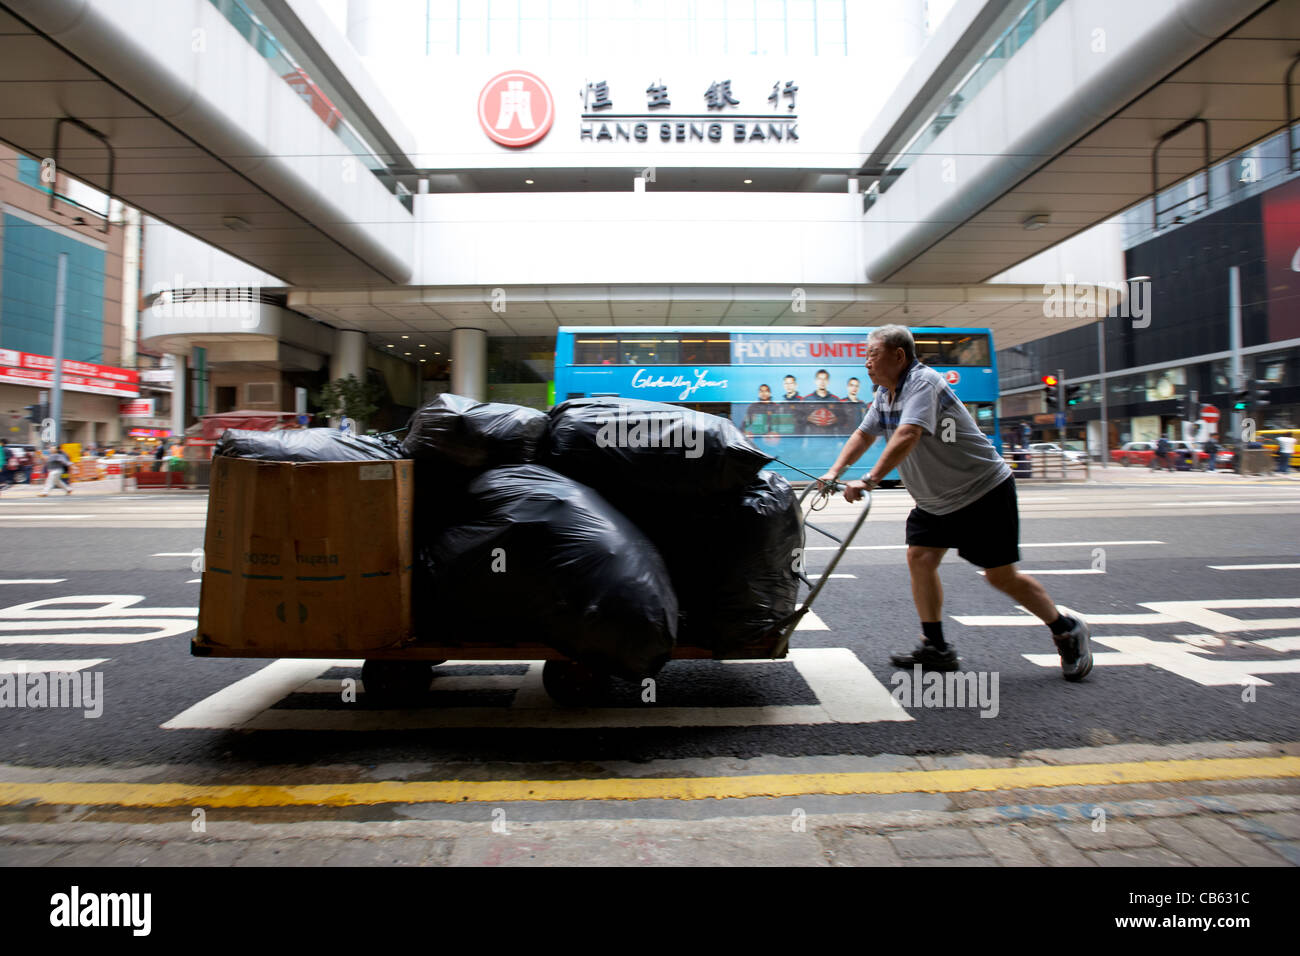 man pushes delivery cart past hang seng bank hq central district, hong kong island, hksar, china deliberate motion - Stock Image